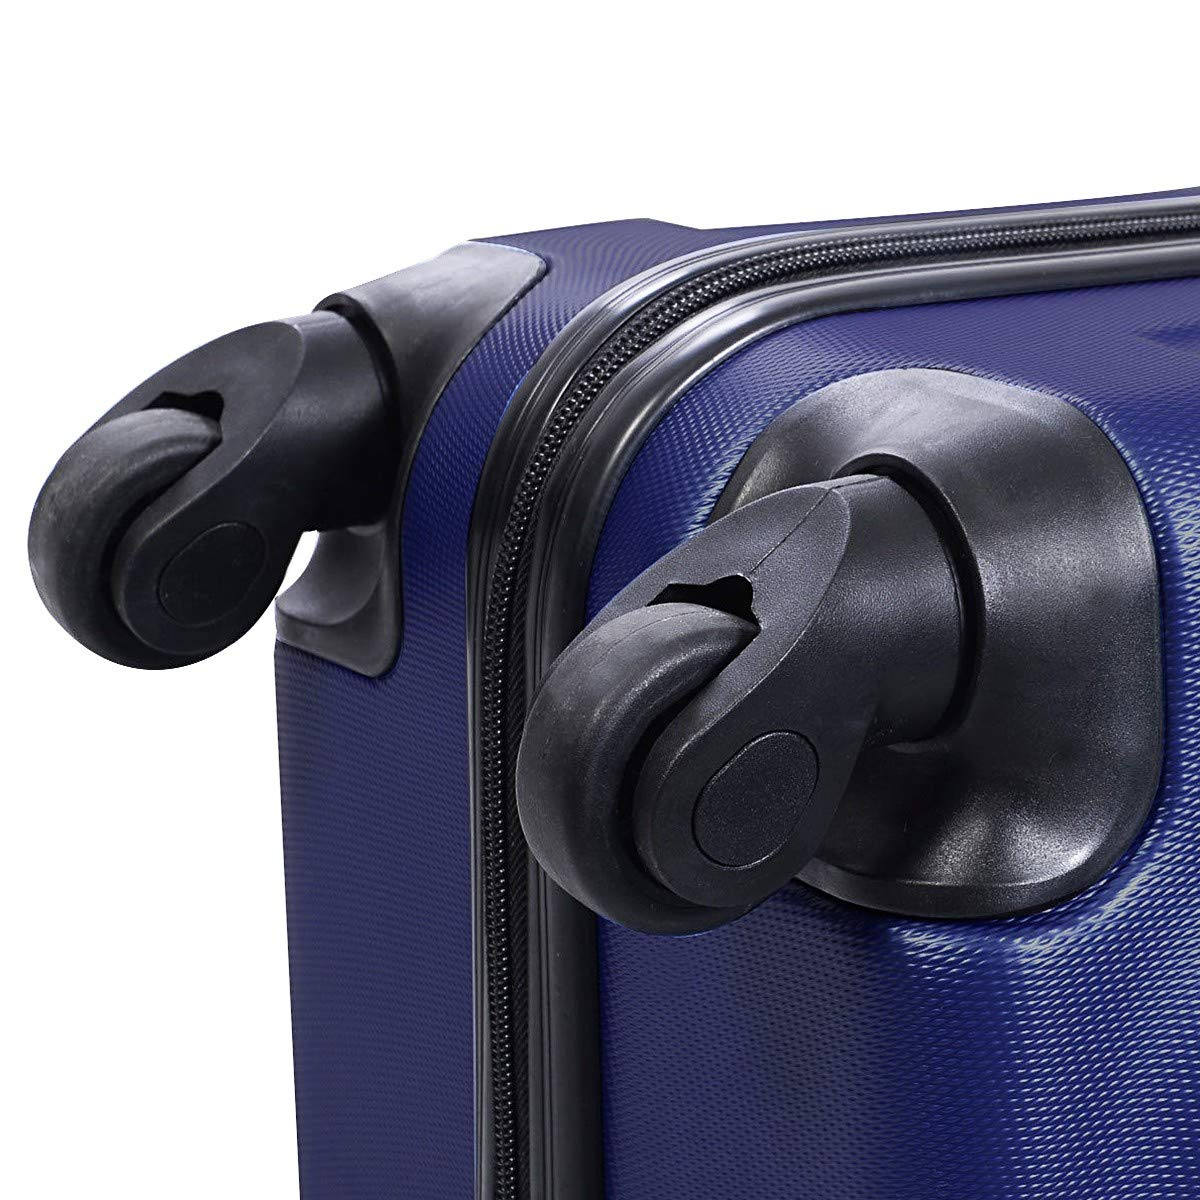 3 pcs Luggage Trolley Case Set Dark Blue Only by eight24hours